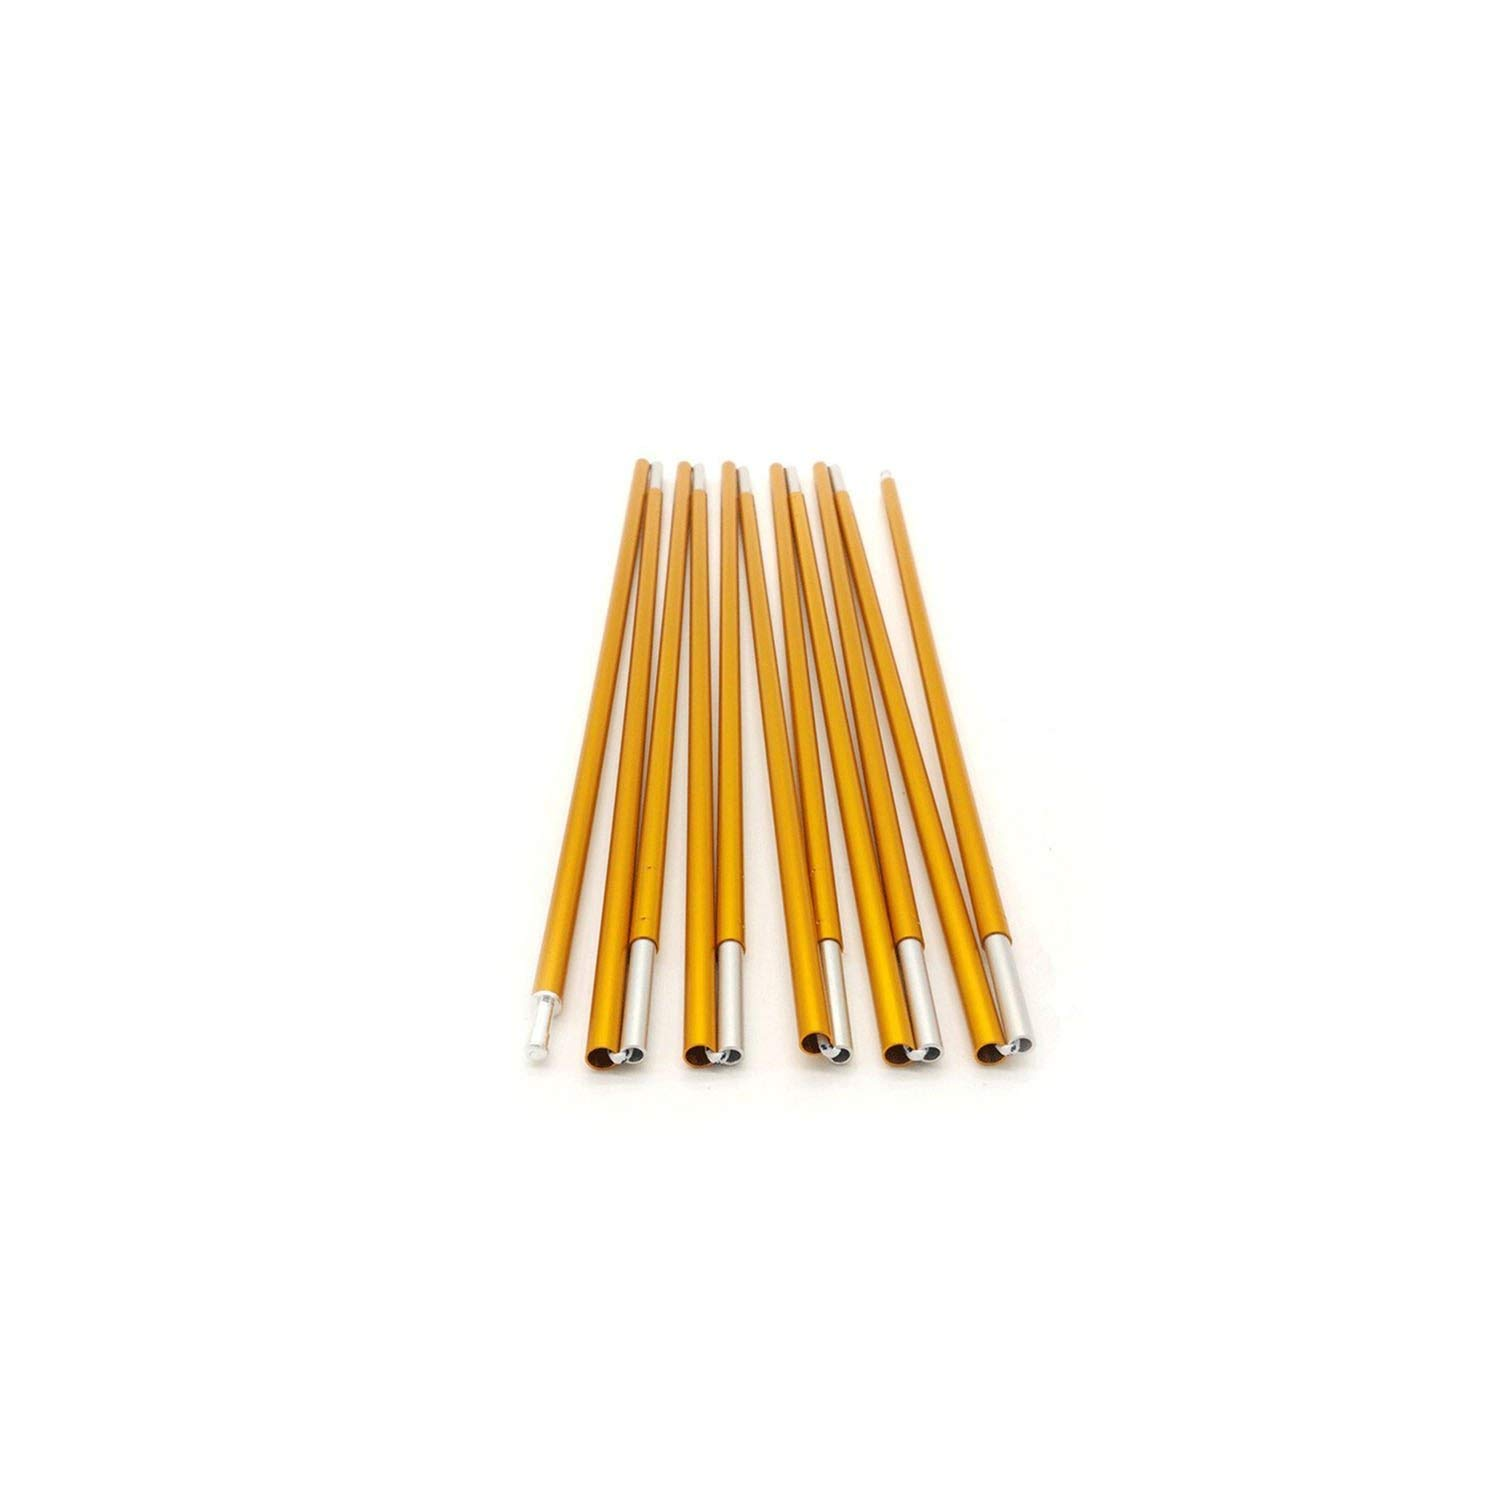 5 people tent pole Tent Stakes2Pcs Set Outdoor Camping Tent Pole Aluminum Alloy Tent Rod Spare Replacement 8.5Mm Tent Support Poles Tent Accessories